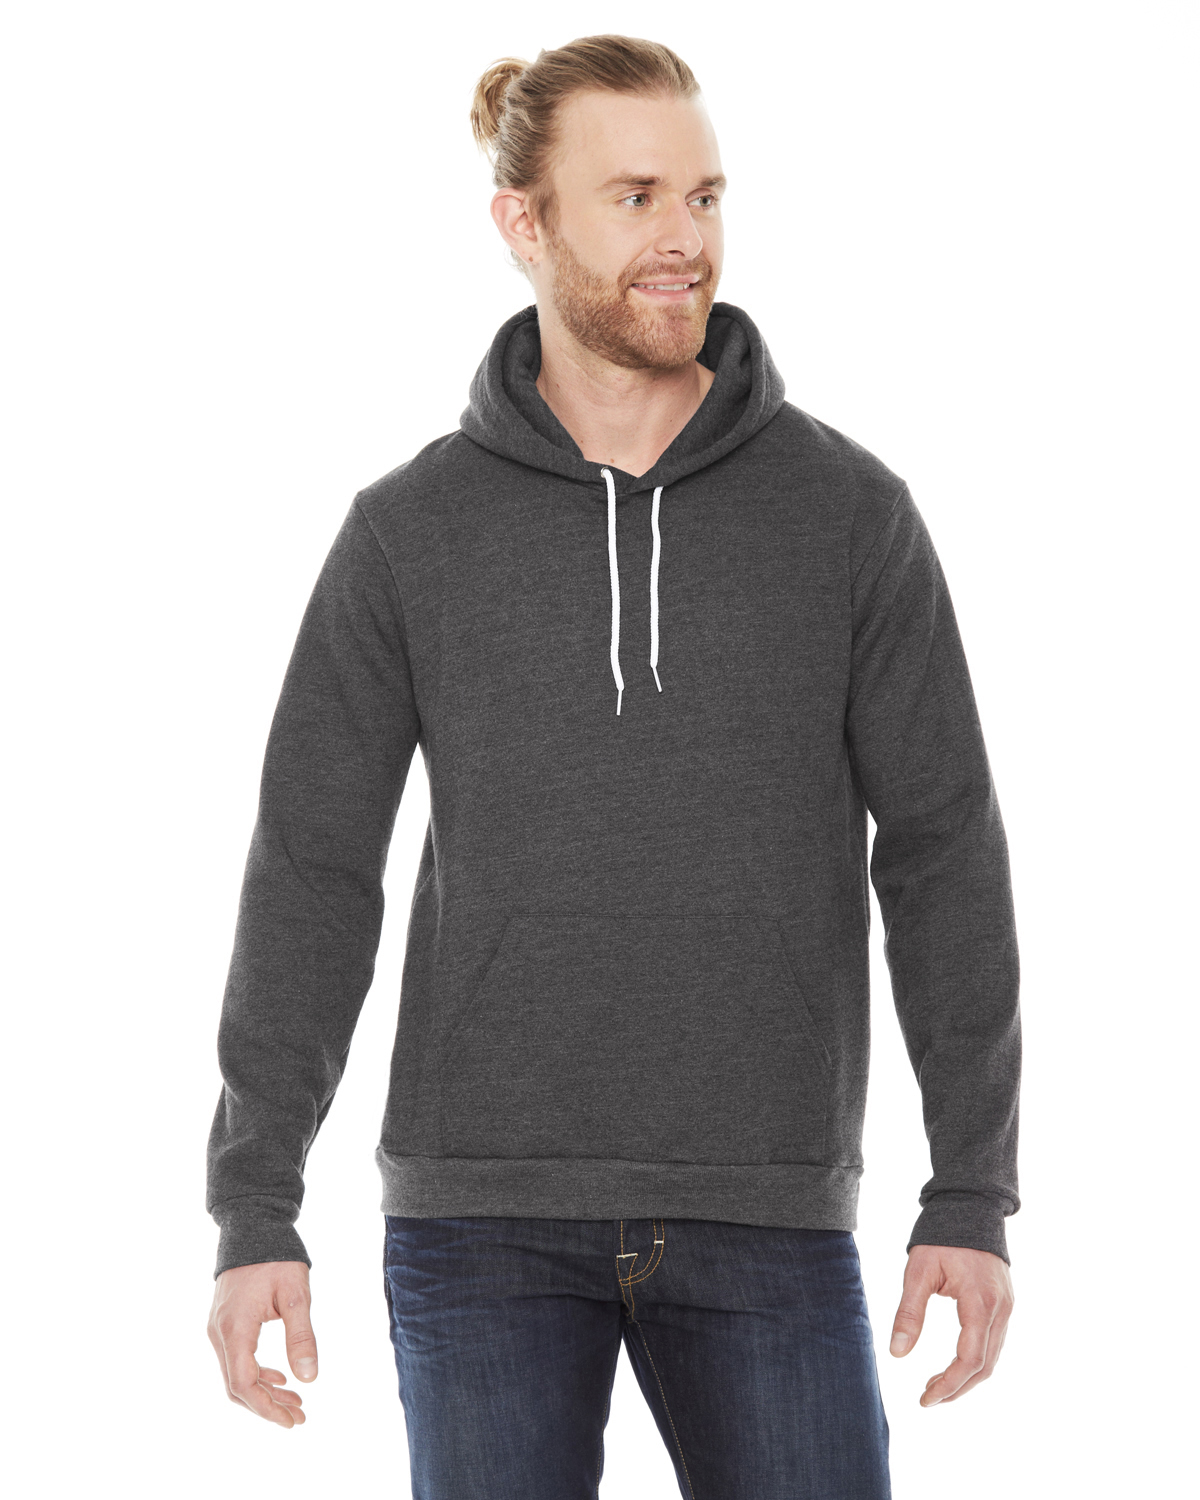 American Apparel Unisex Flex Fleece Drop Shoulder Pullover Hoodi